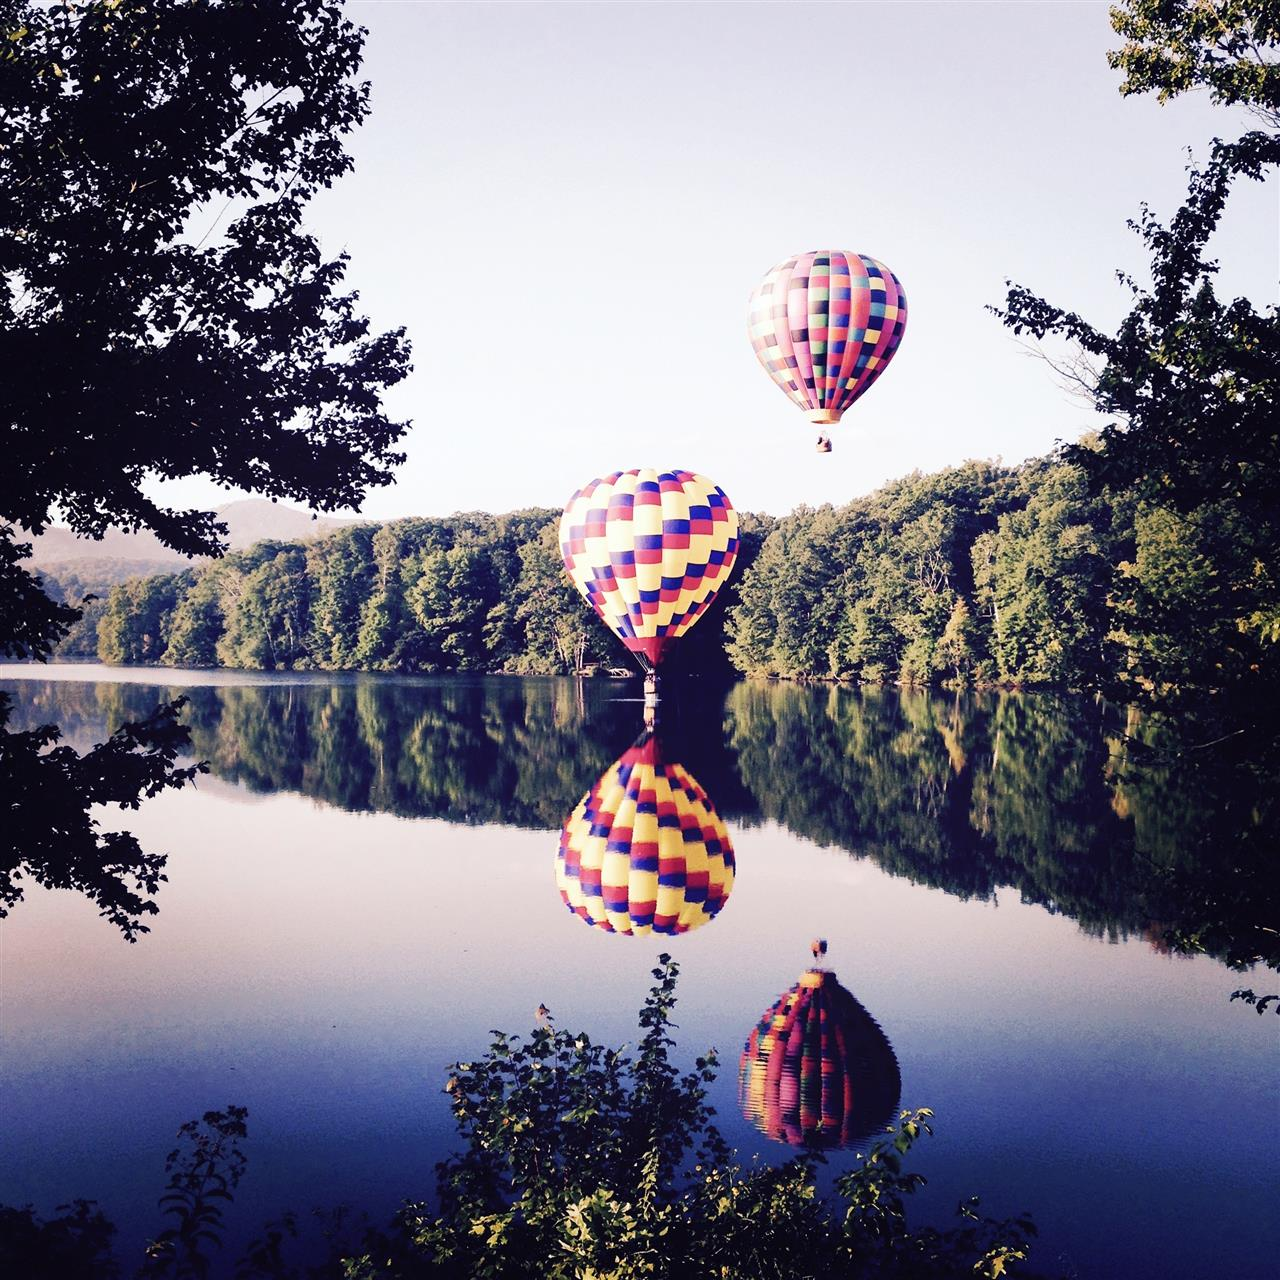 Touch down of hot air balloons in Biltmore Lake, Asheville NC.